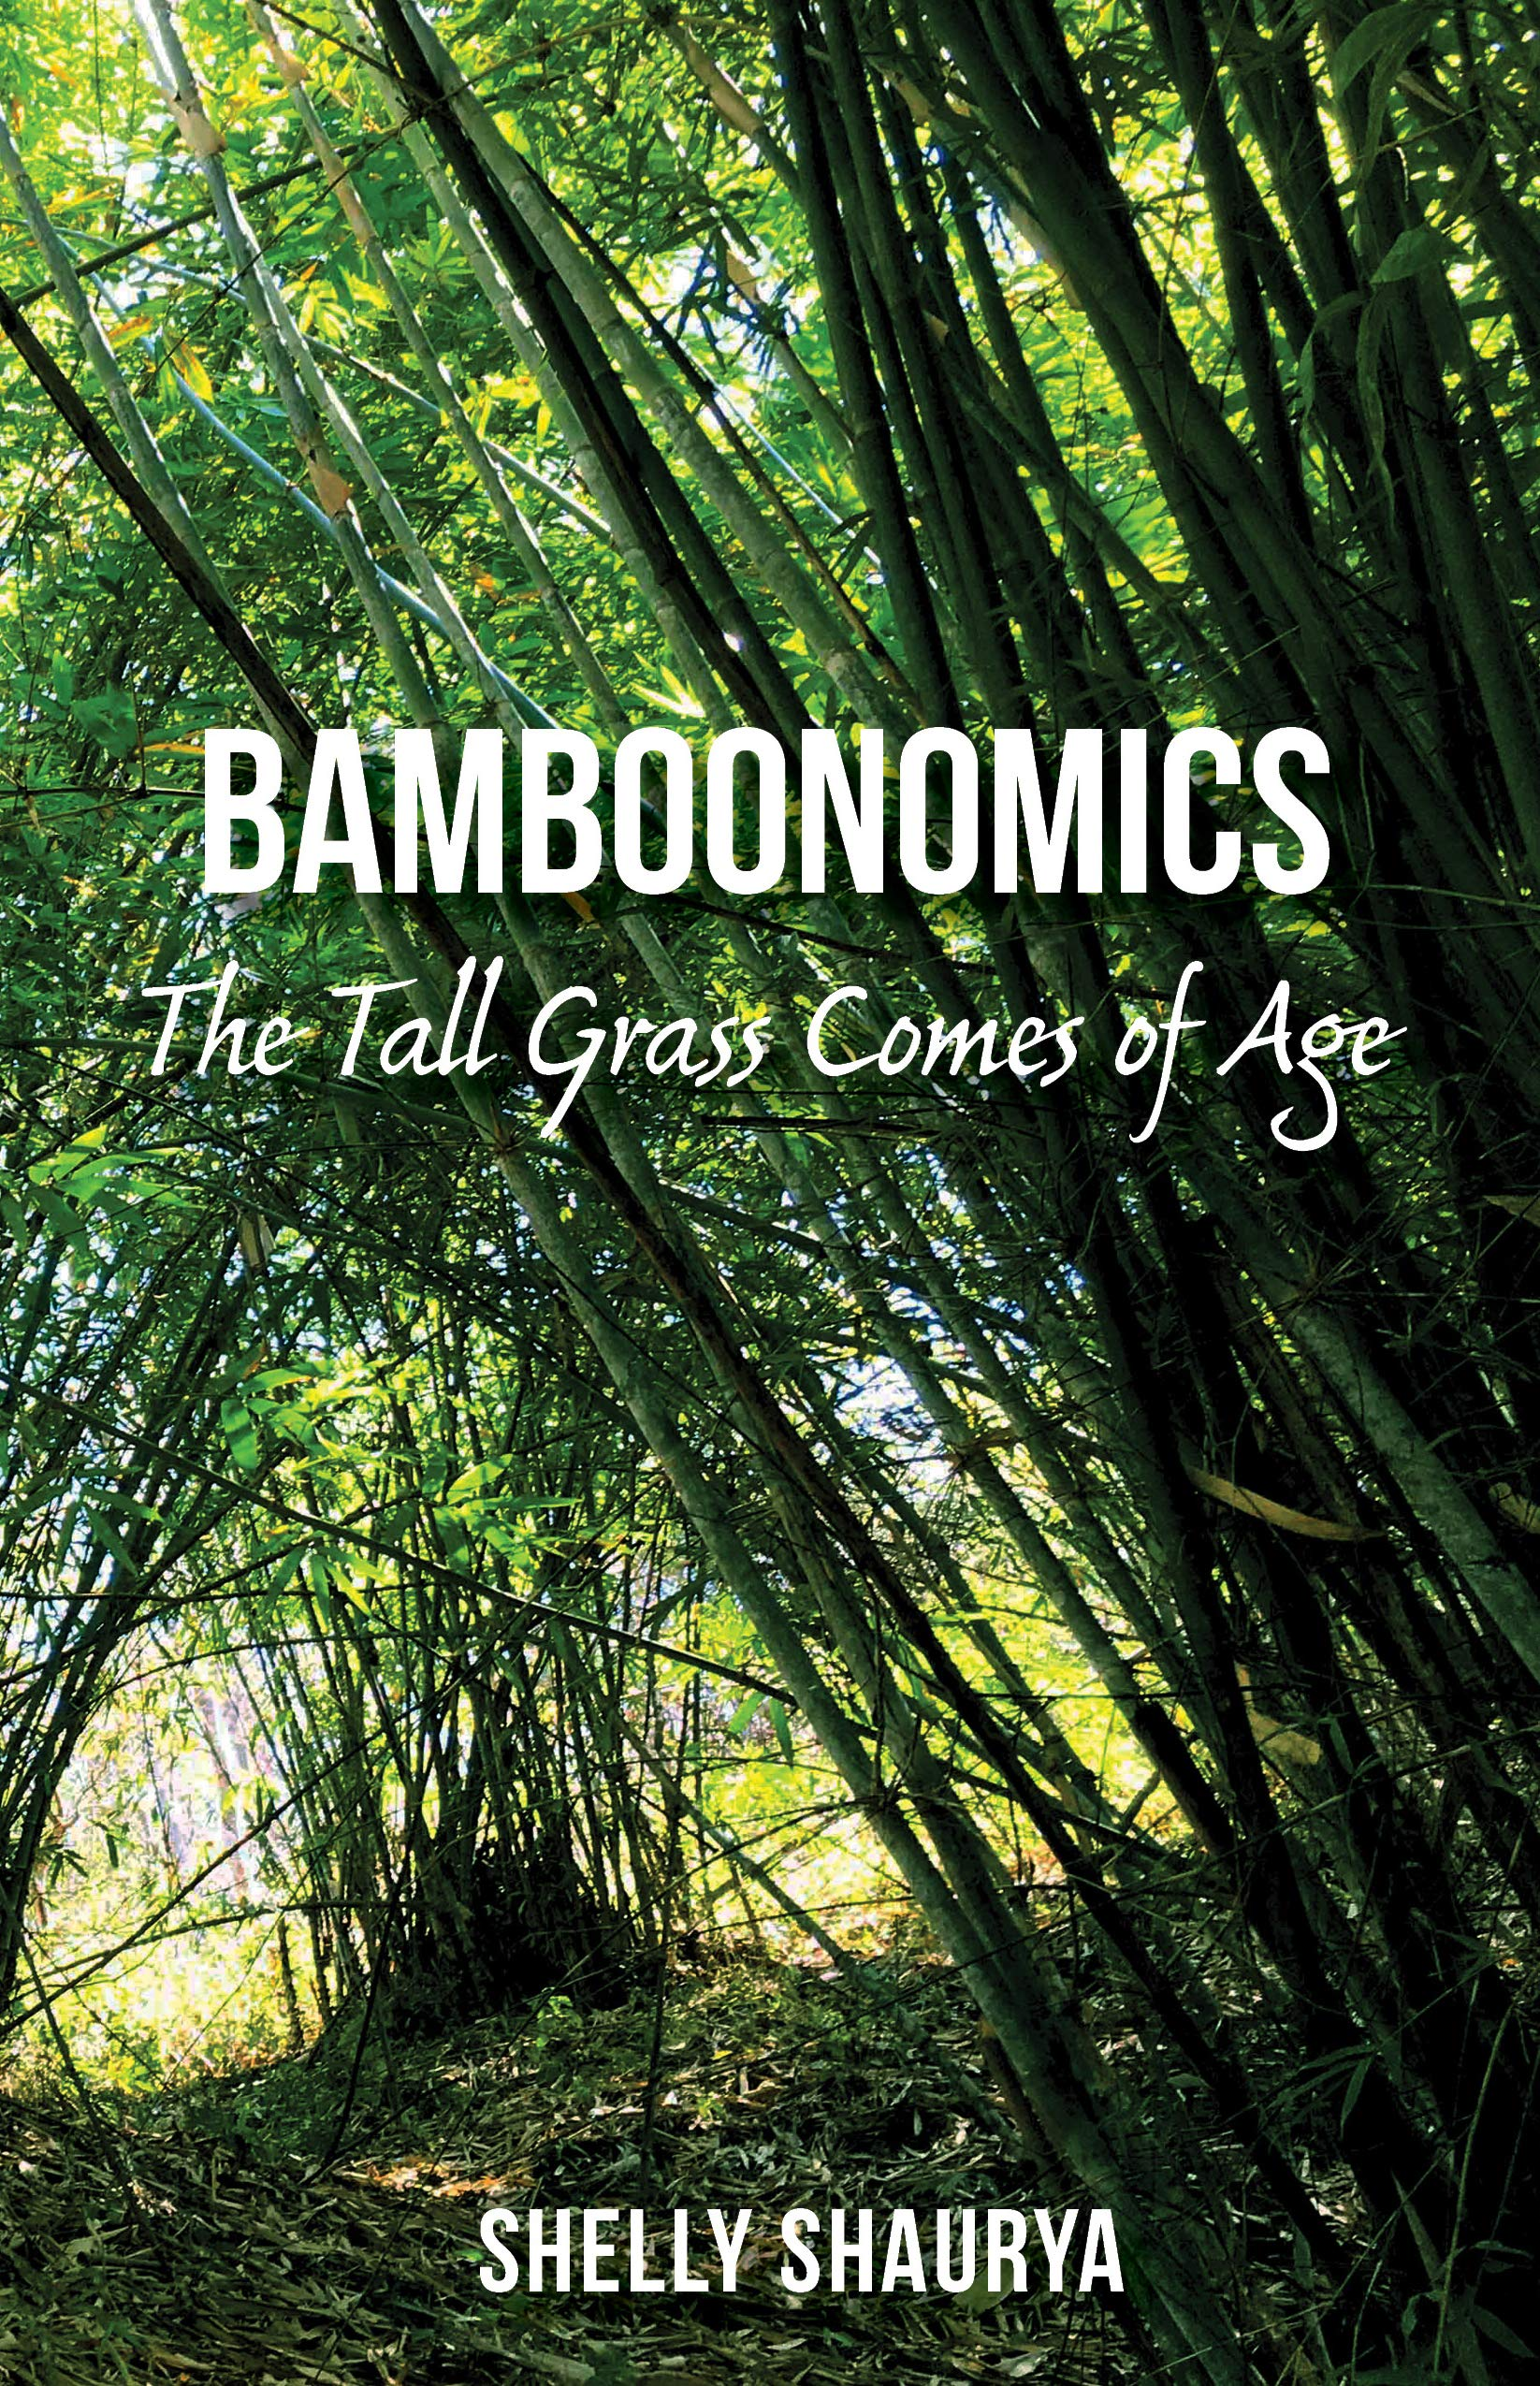 Bamboonomics: The Tall Grass Comes of Age